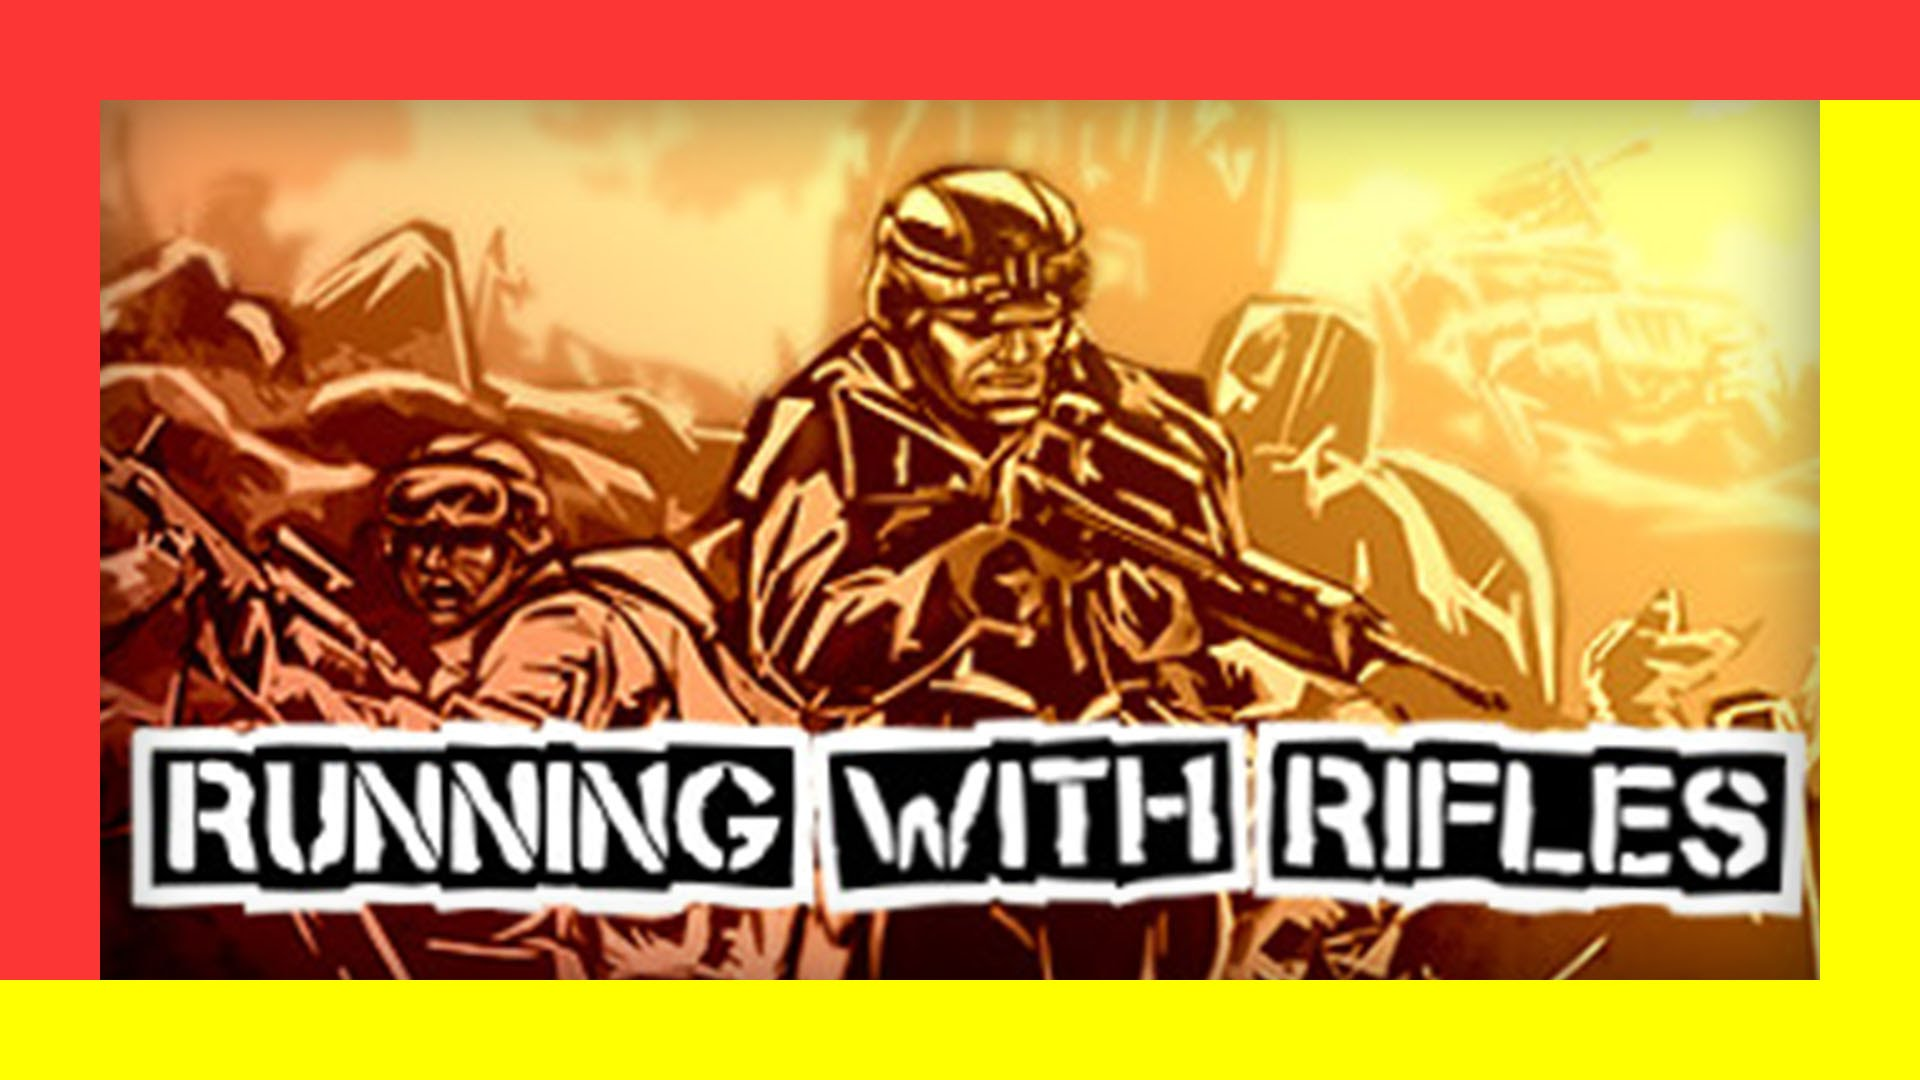 RUNNING WITH RIFLES STEAM KEY GLOBAL+ BONUS